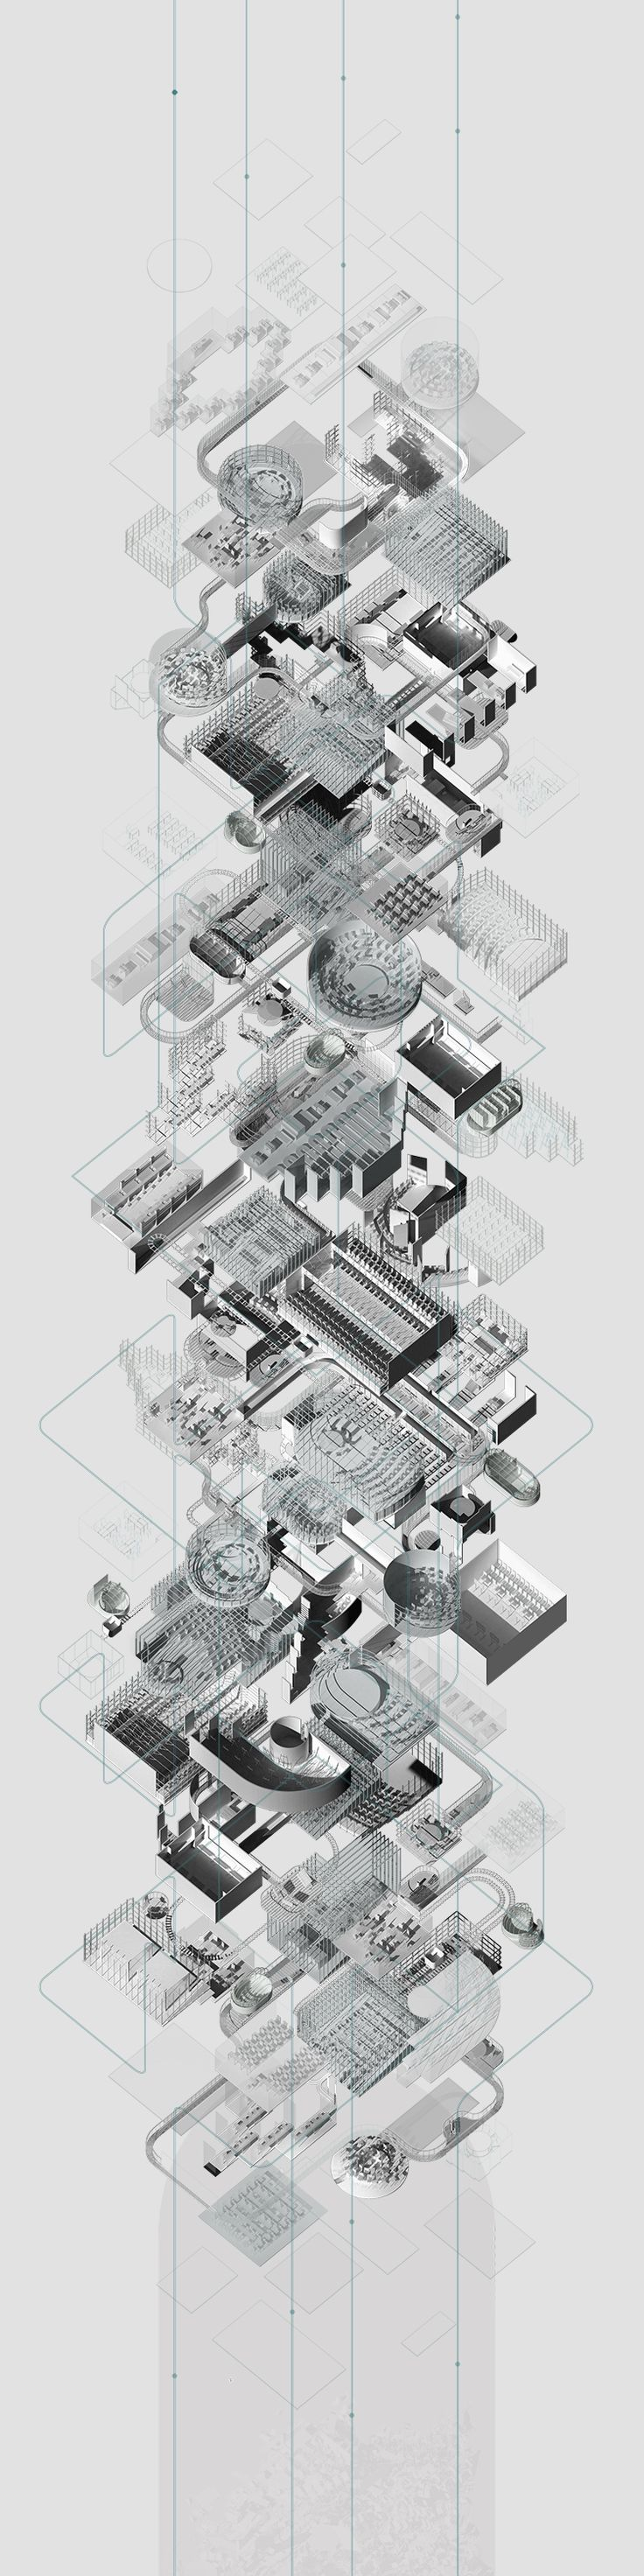 AXO MAP [could be used instead of timeline | breaking down the historical progress of the site] Peter Zsuzsa, AA Intermediate 6, 2015